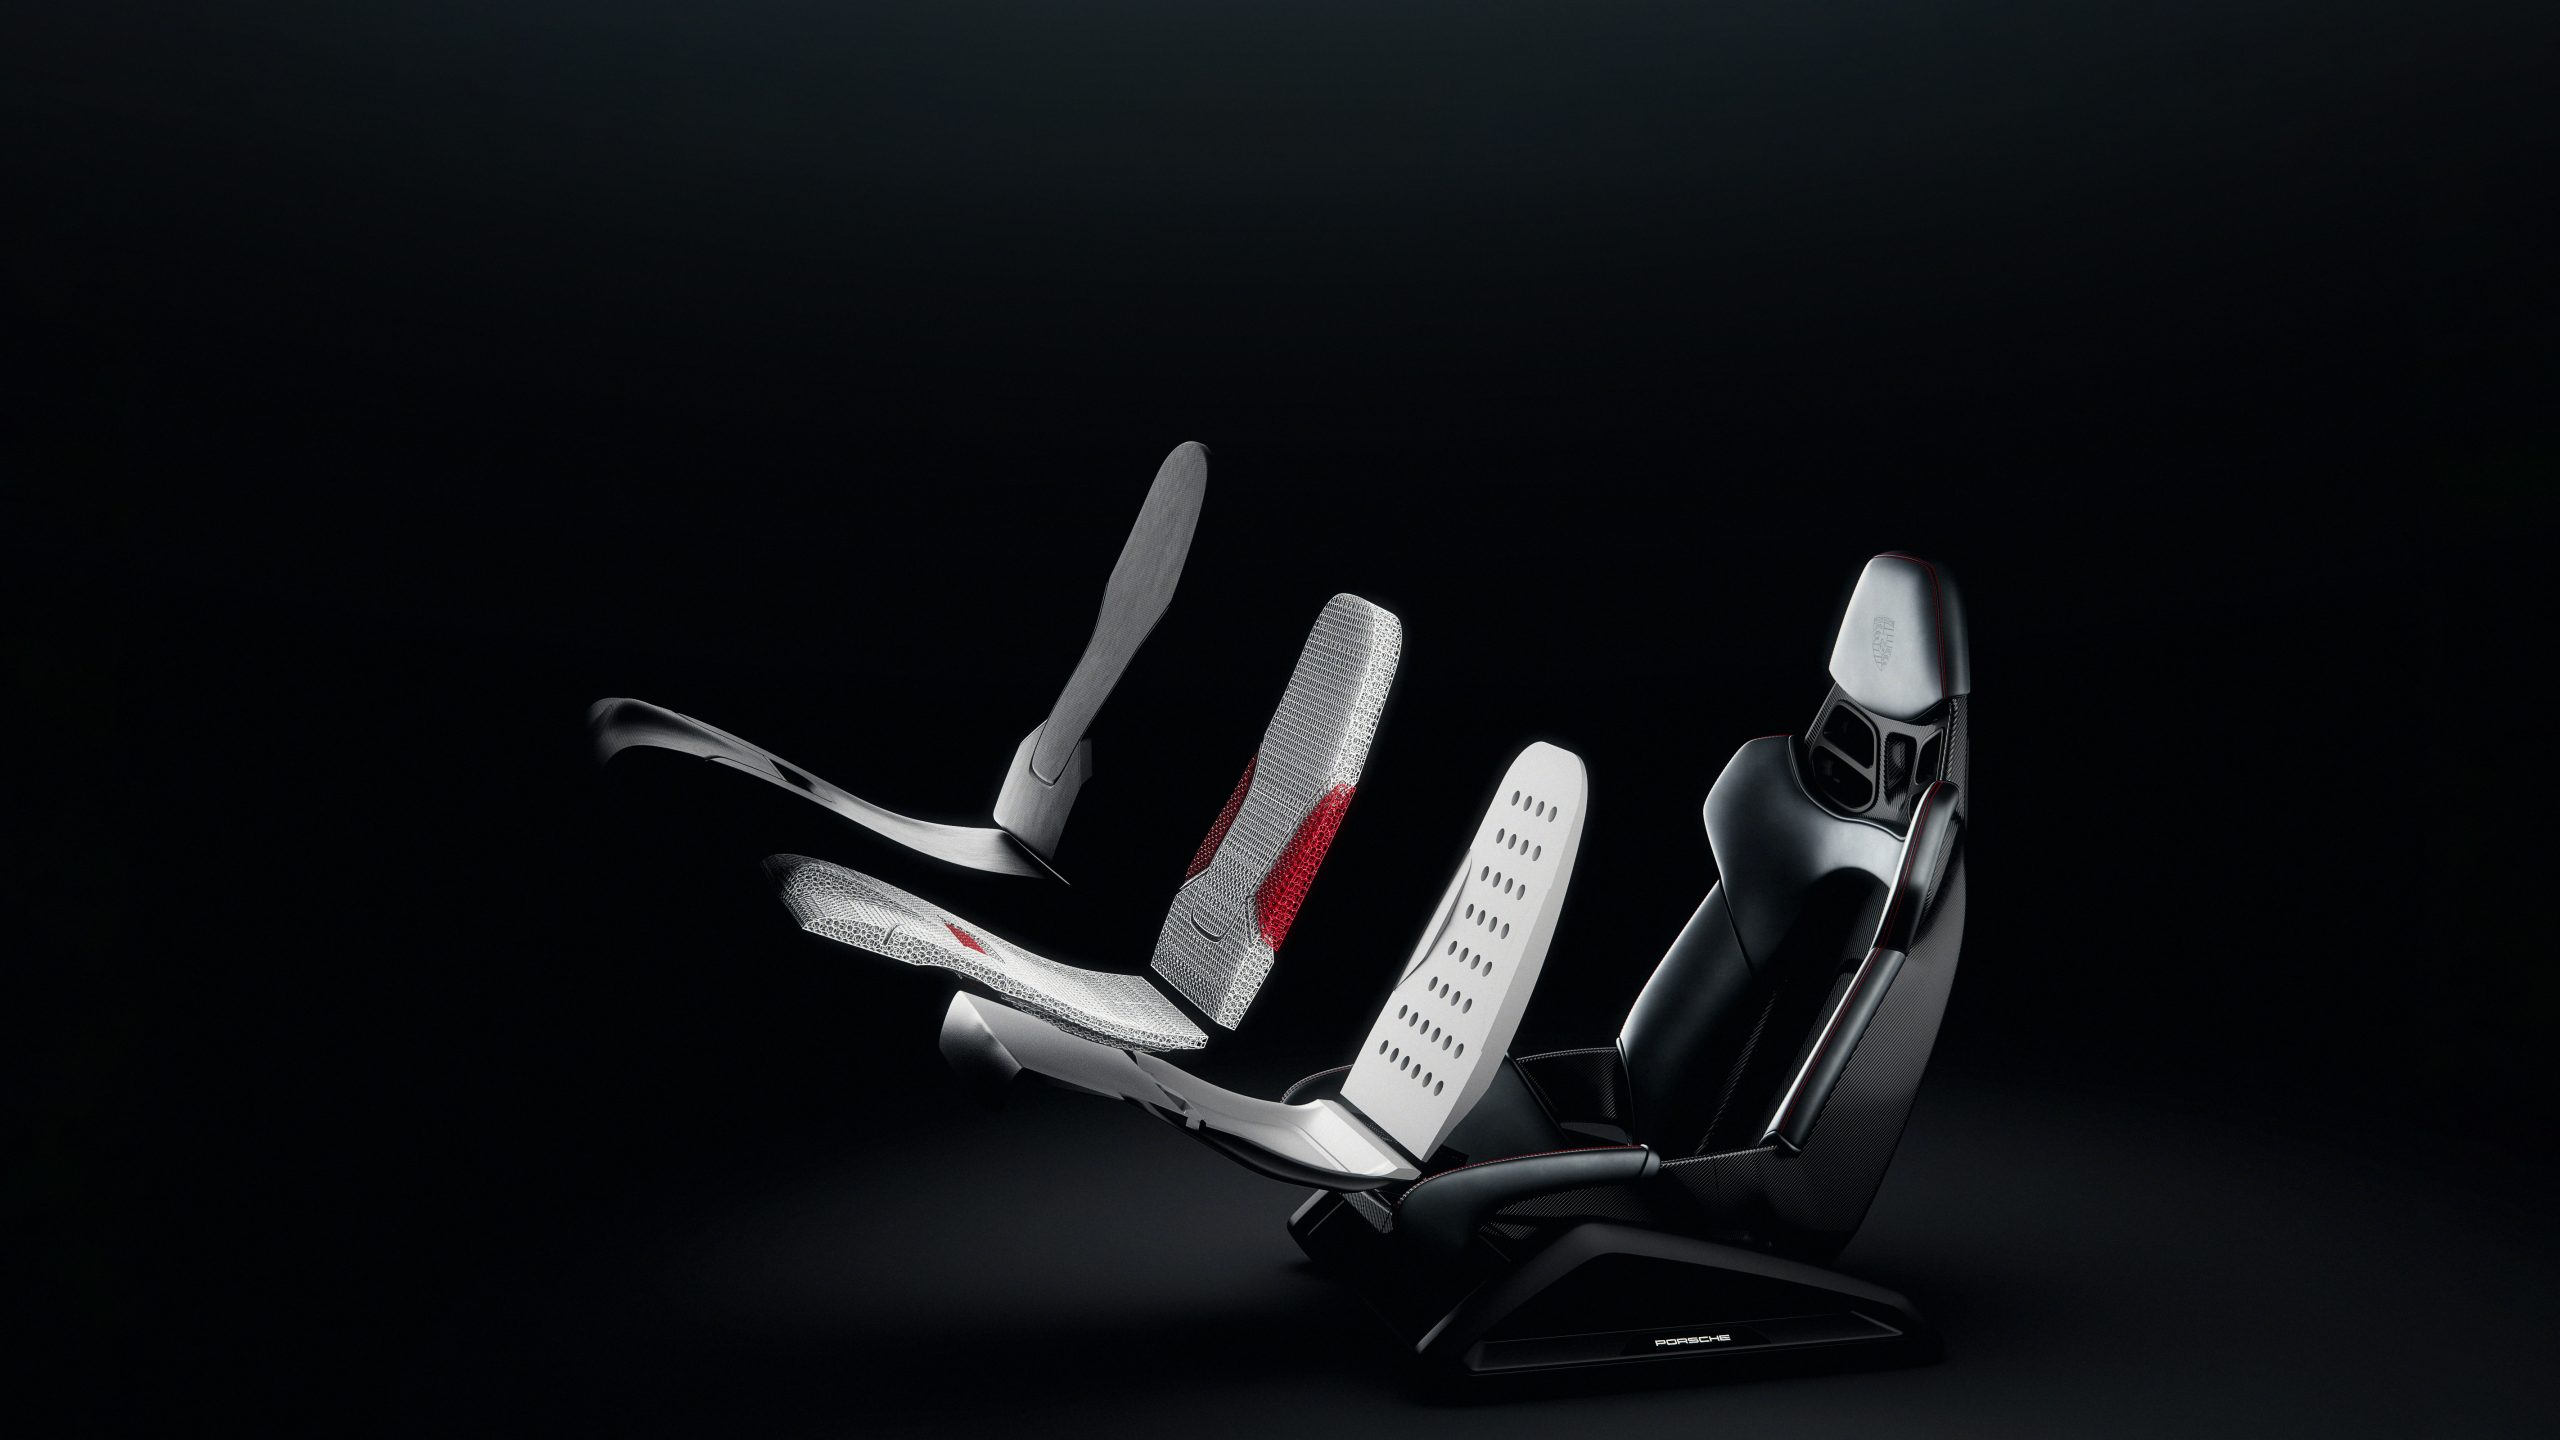 https://www.oglemodels.com/news/porsche-embrace-3d-printing-for-new-bucket-seat-design/